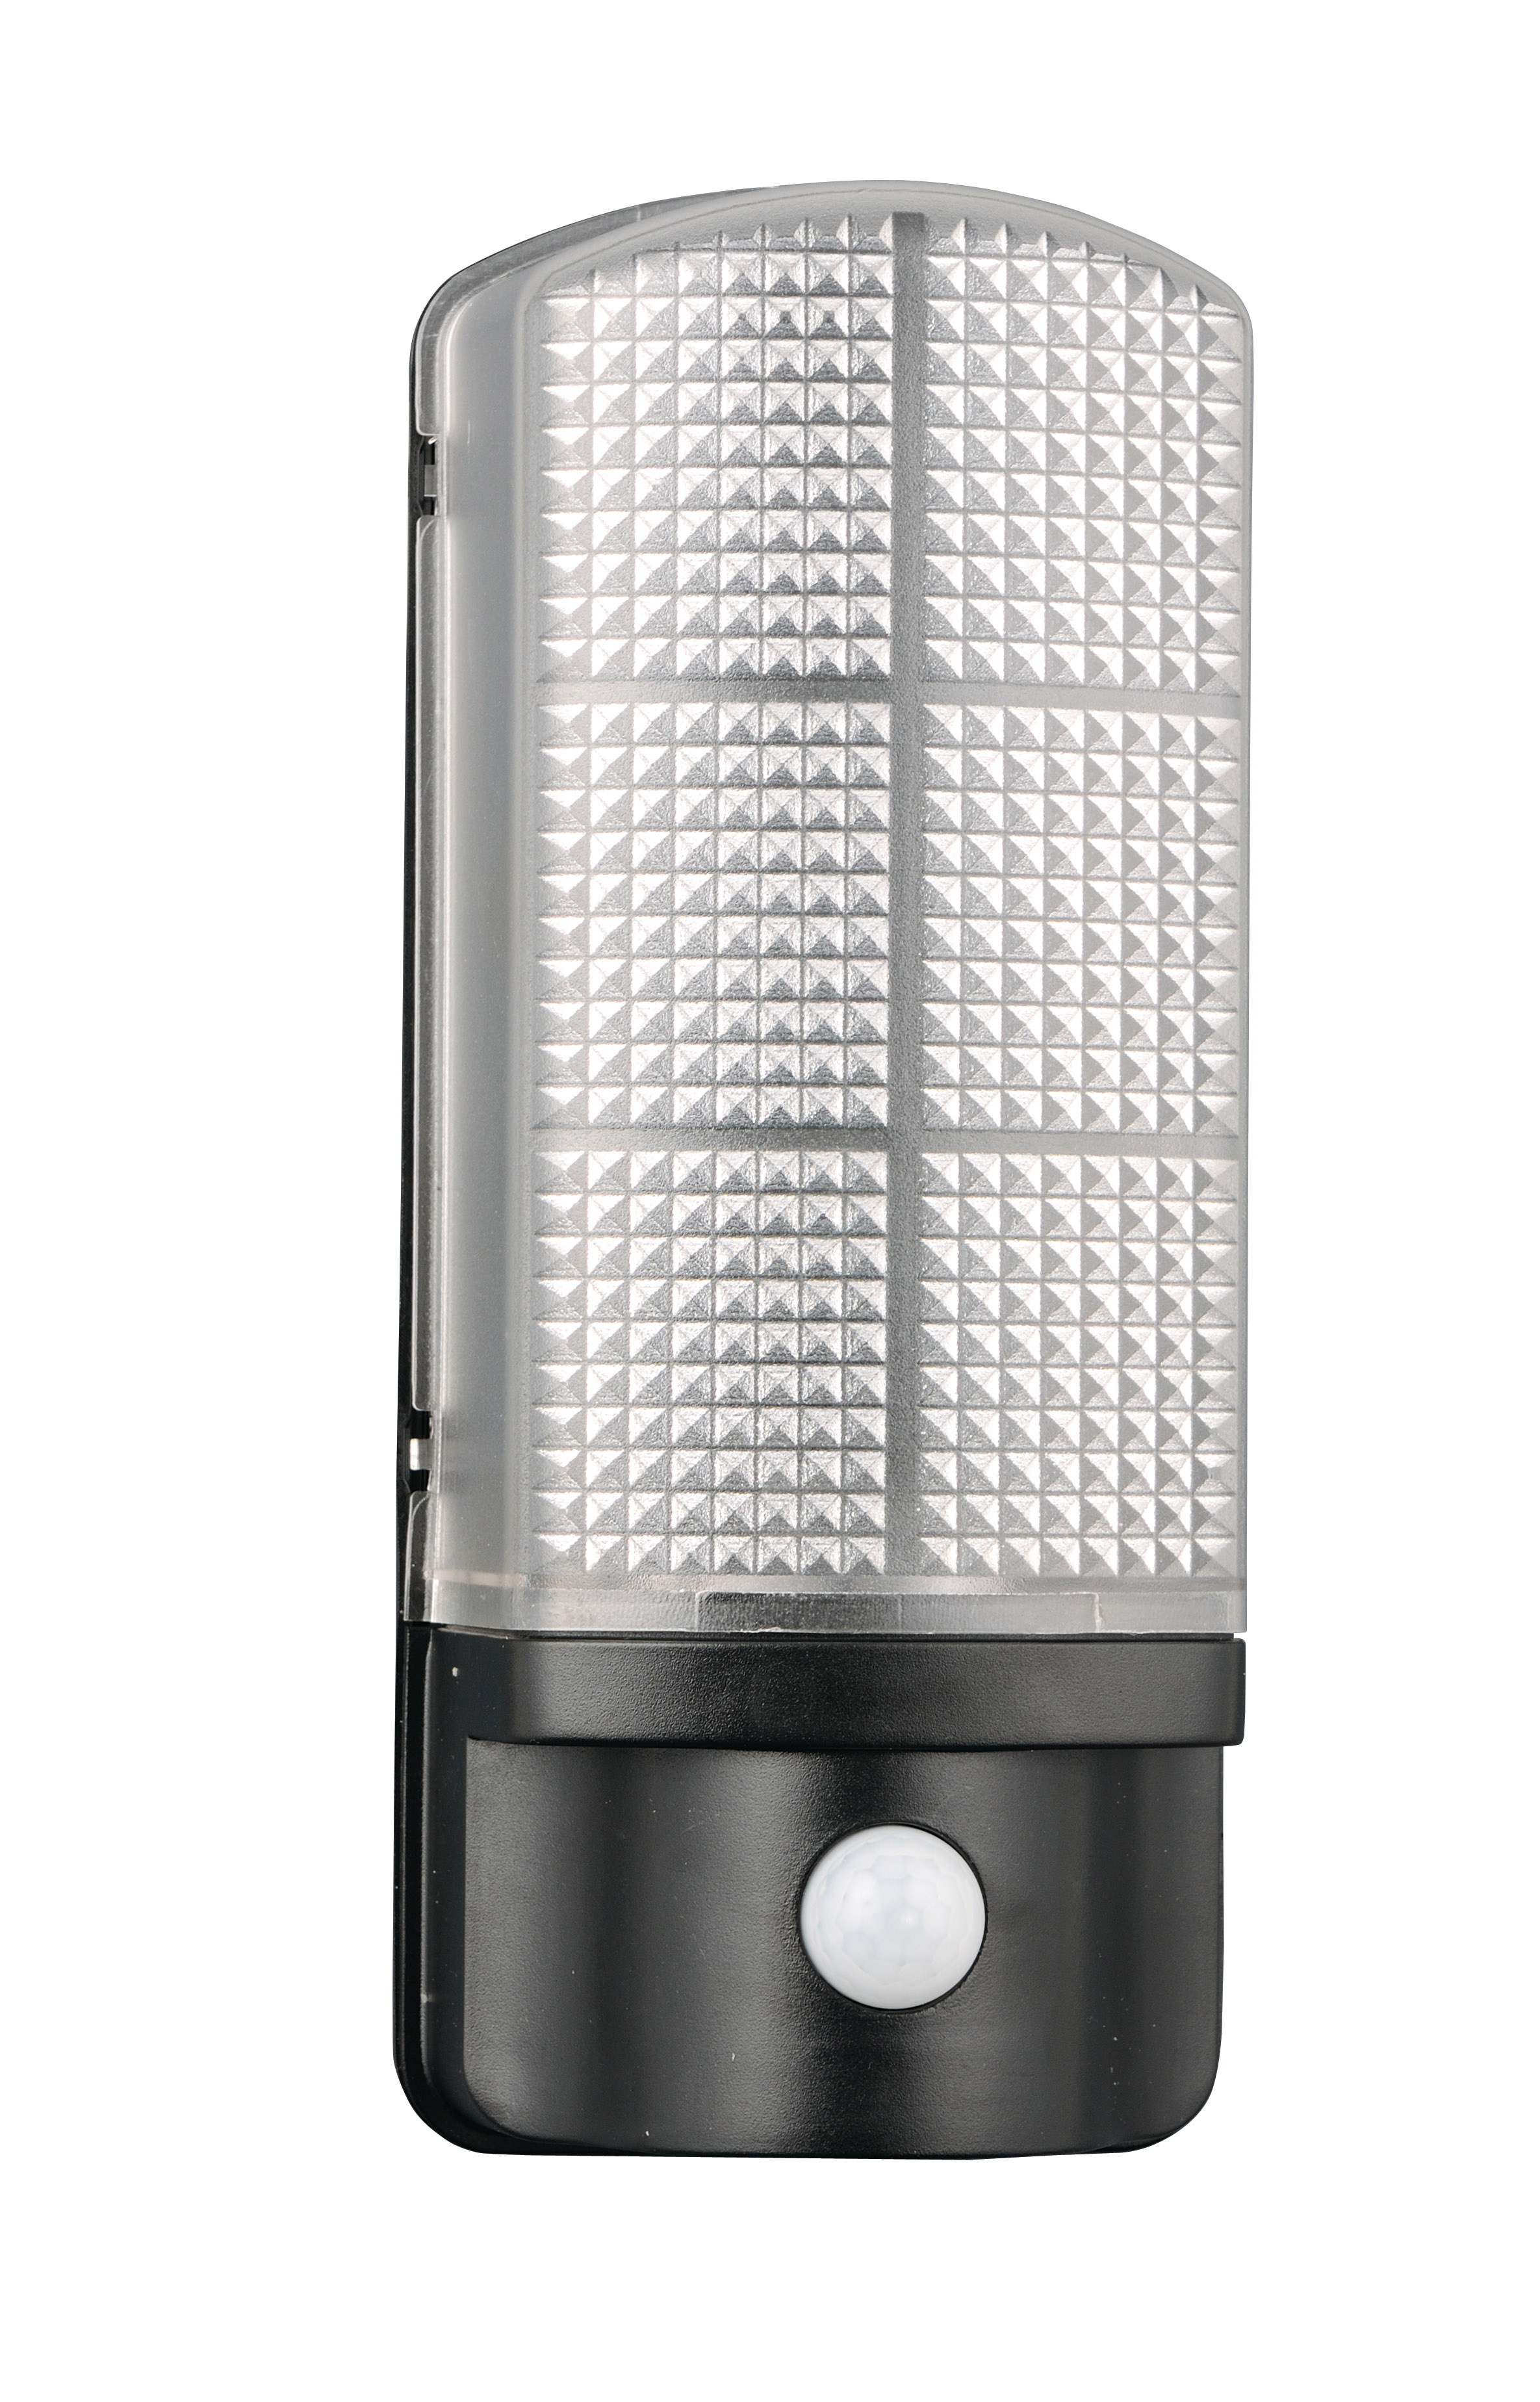 Epping led exterior wall light with day night photocell with pir epping led exterior wall light with day night photocell with pir mozeypictures Choice Image